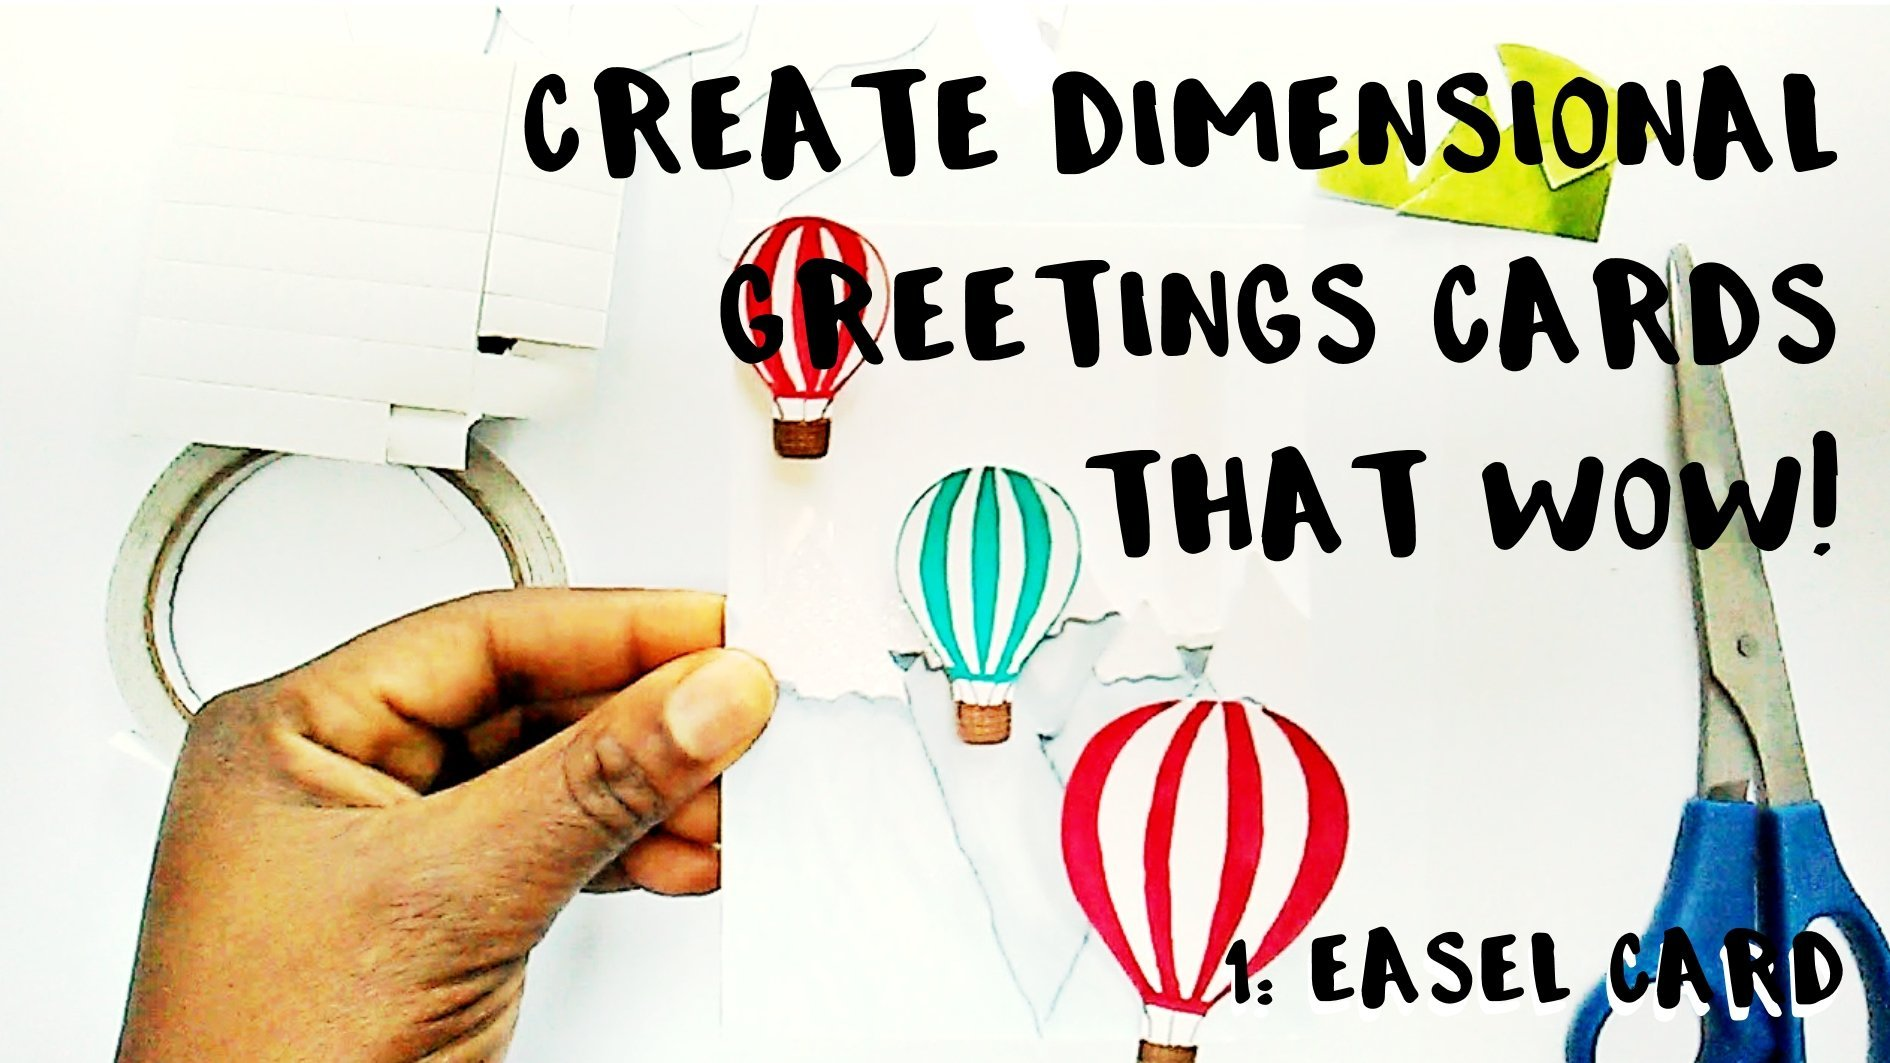 Create dimensional greetings cards that wow 1 easel card lilian create dimensional greetings cards that wow 1 easel card lilian barker skillshare m4hsunfo